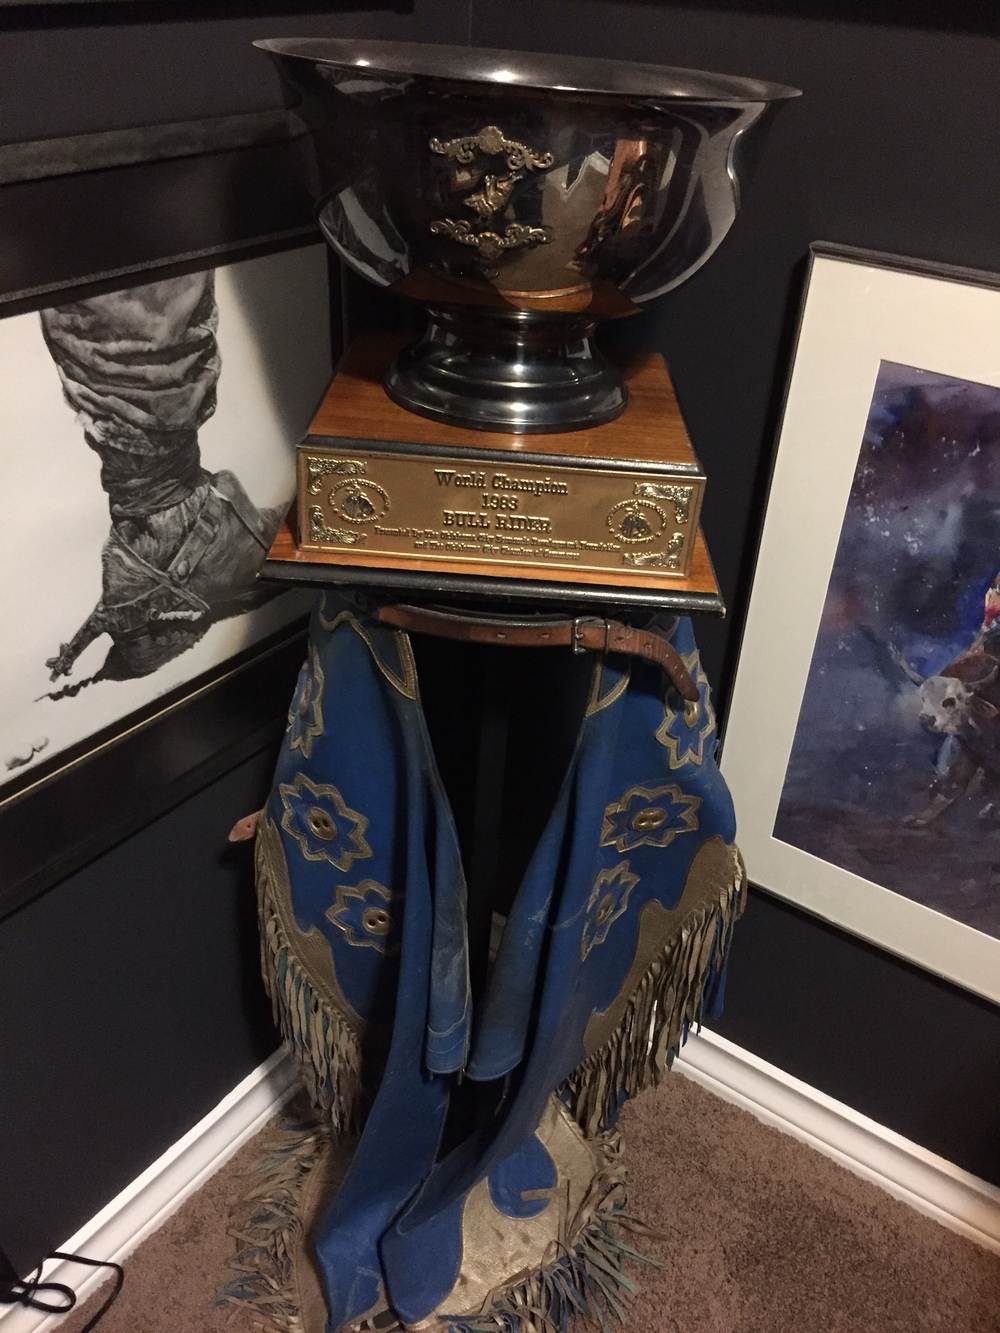 Cody's 1983 World Champion Cup, and the chaps he wore at that NFR when he became the World Champion!